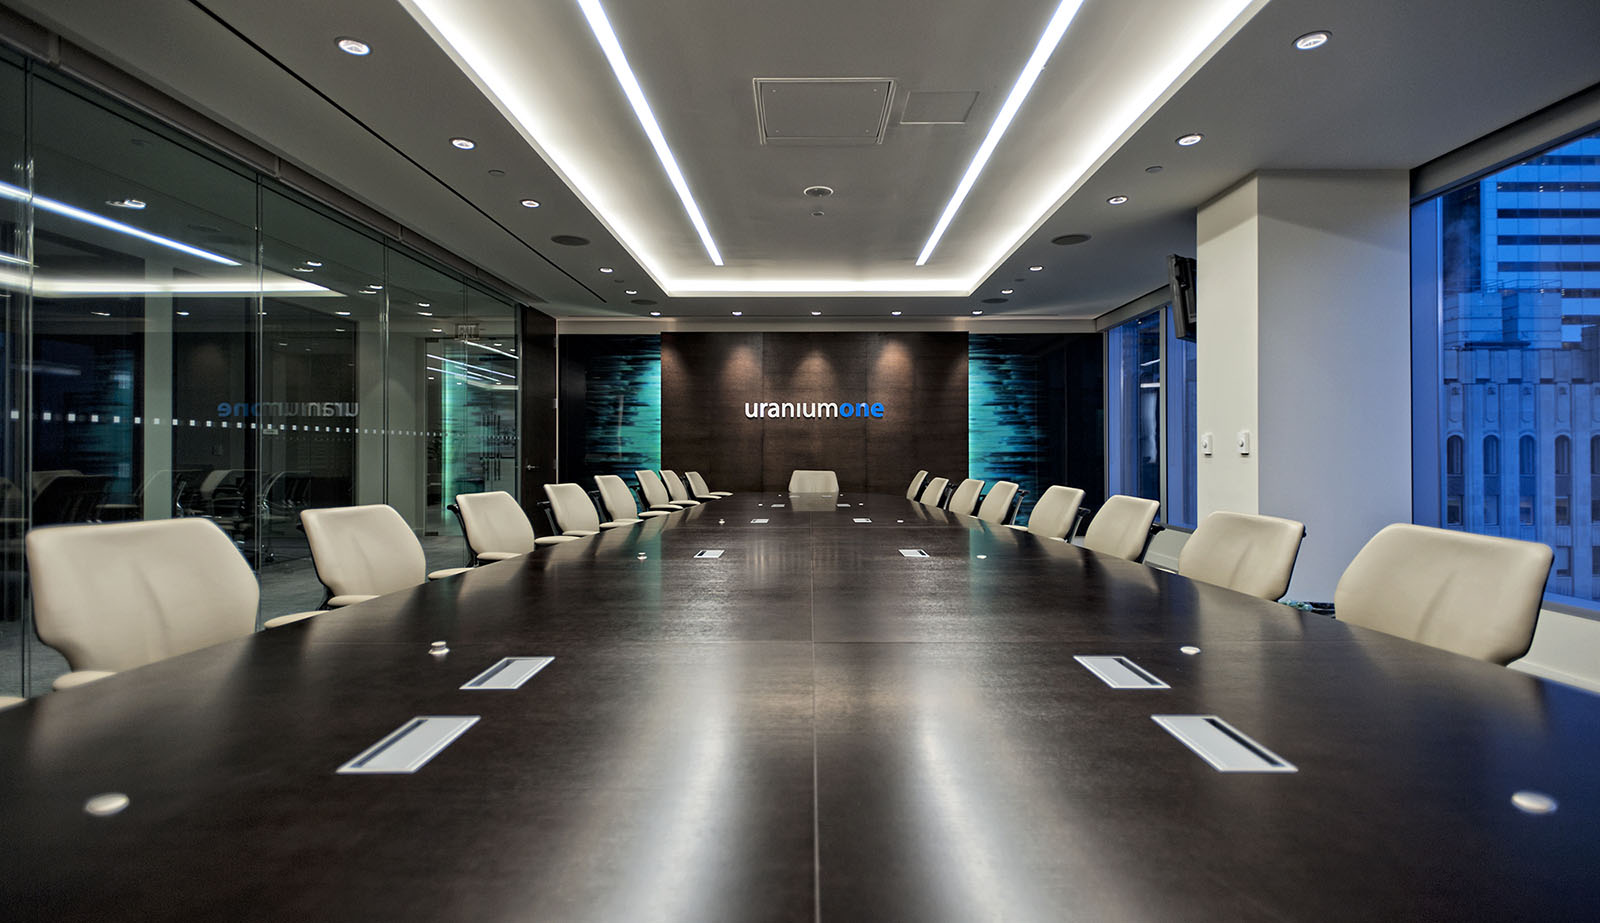 Uranium One offices boardroom, Toronto, Ontario